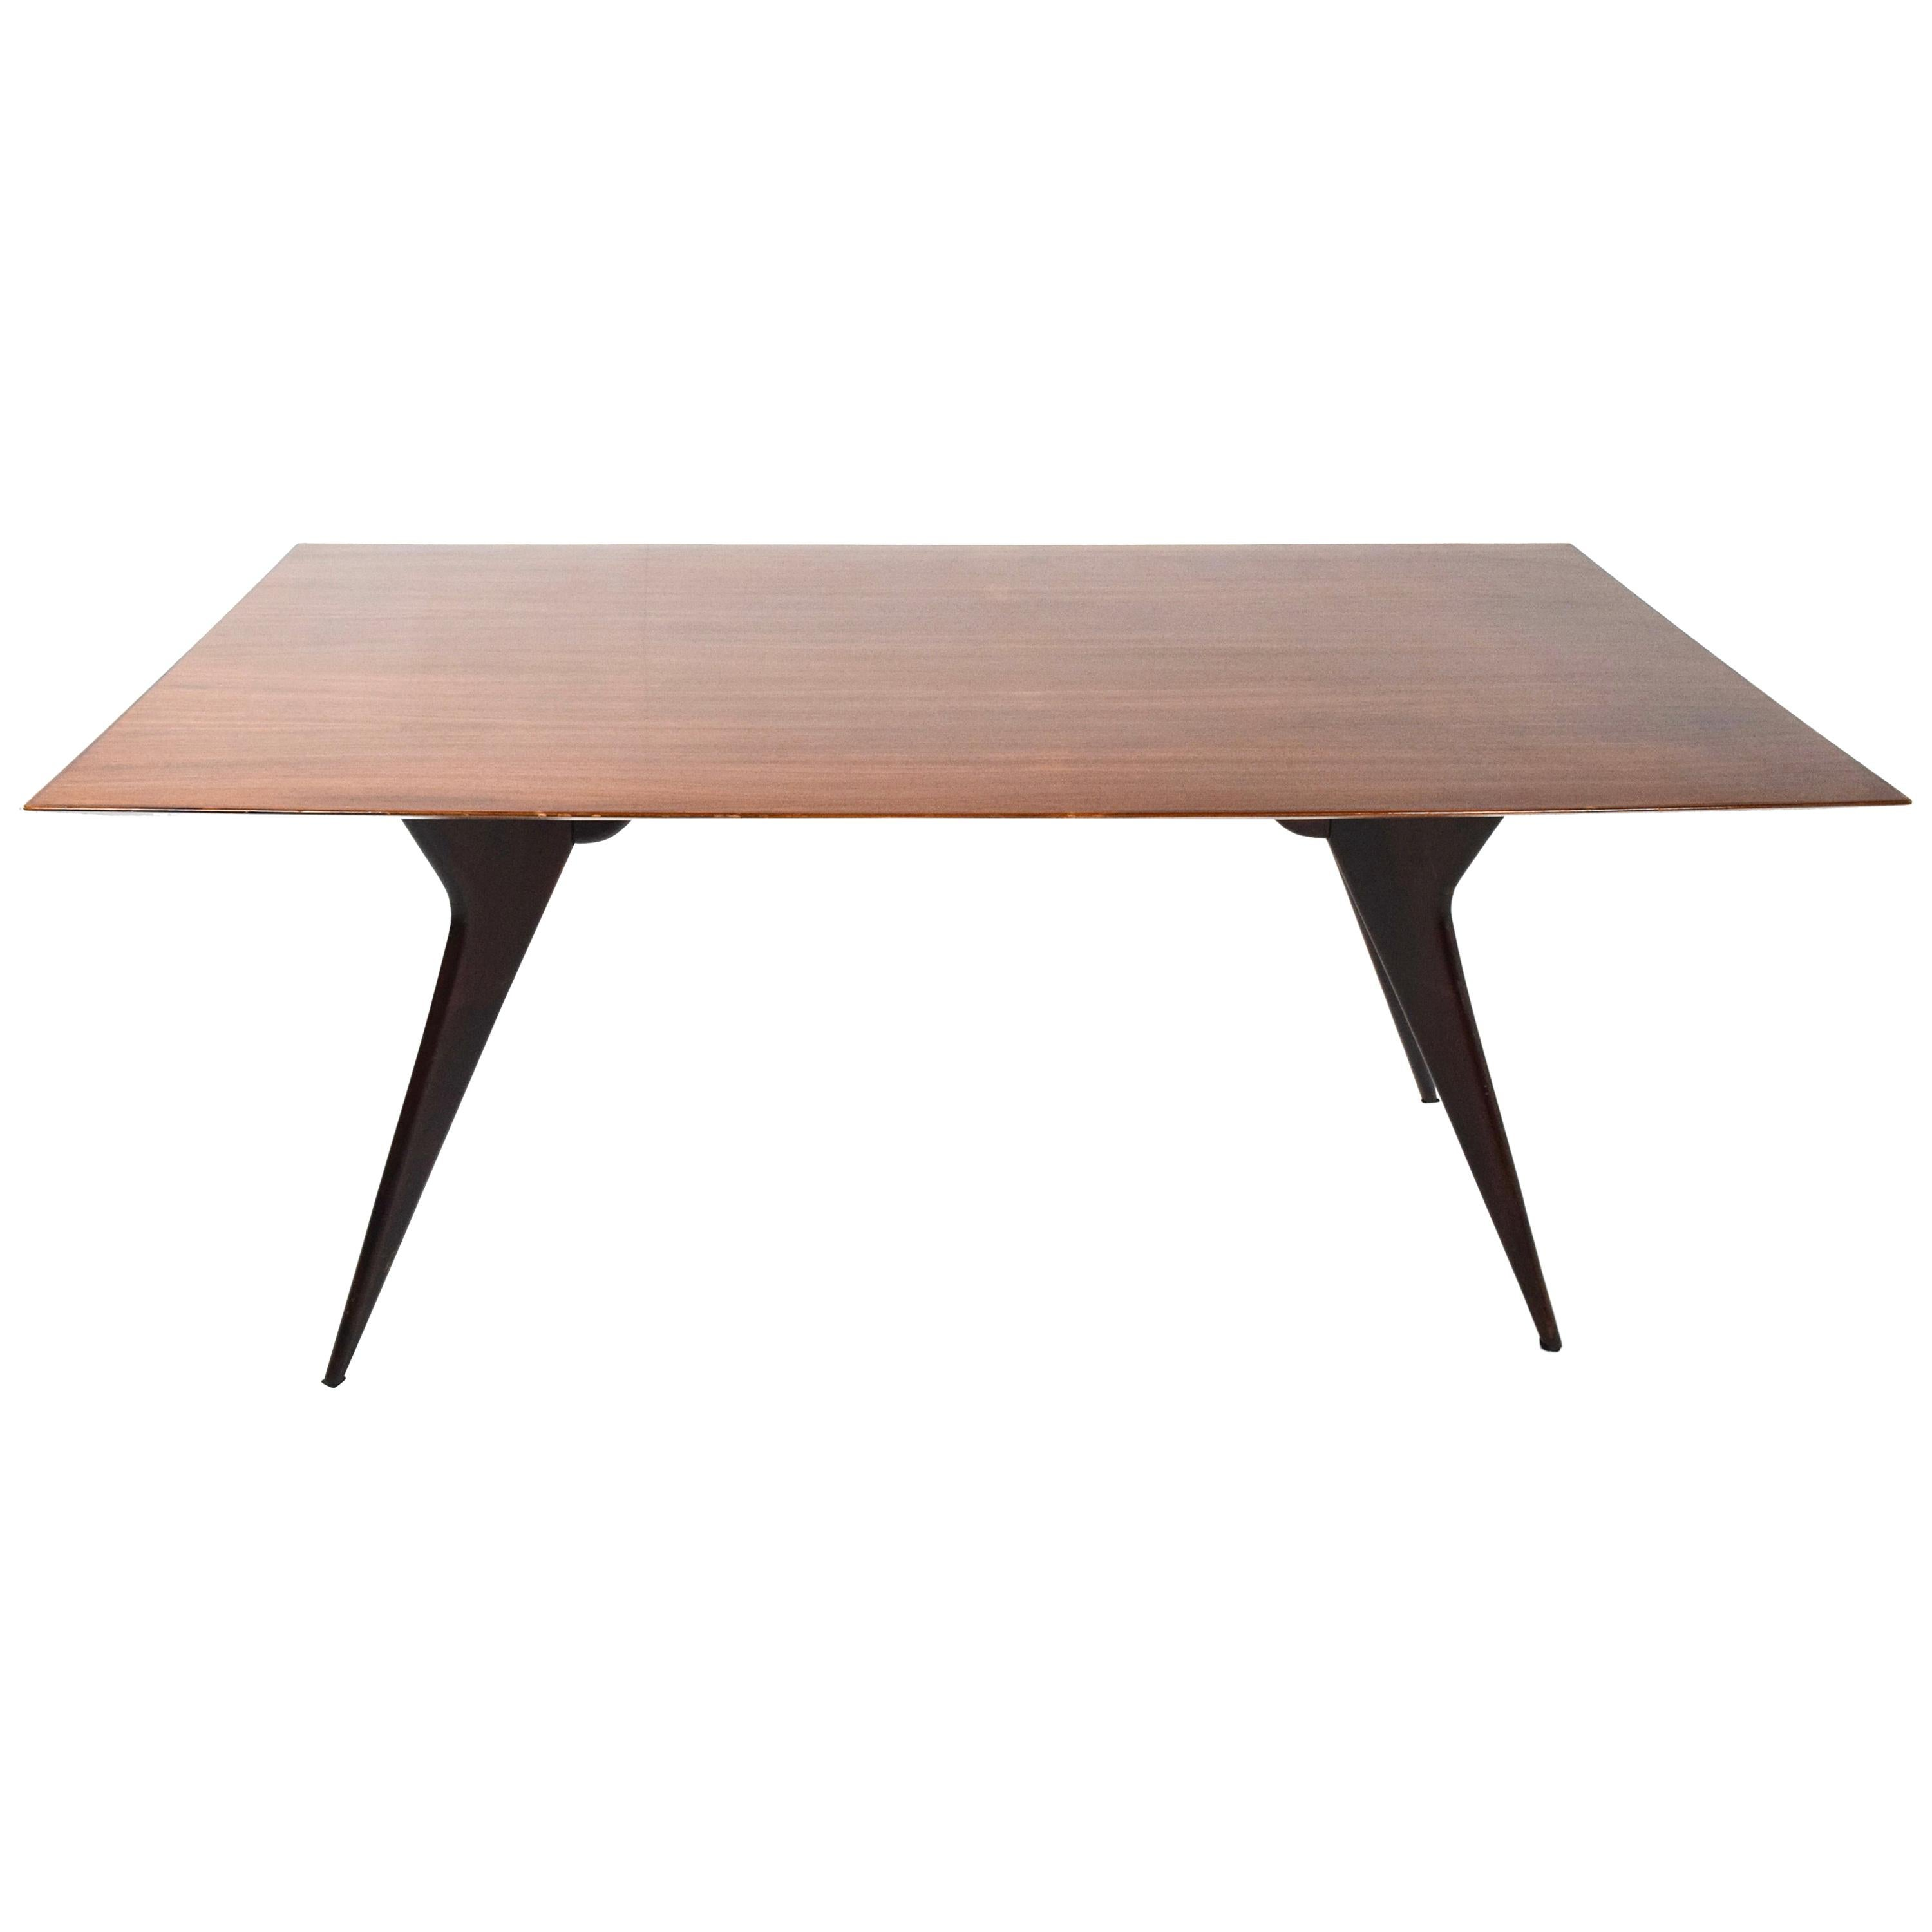 Ico Parisi Dining or Worktable for MIM Roma, Midcentury, Italy, 1950s